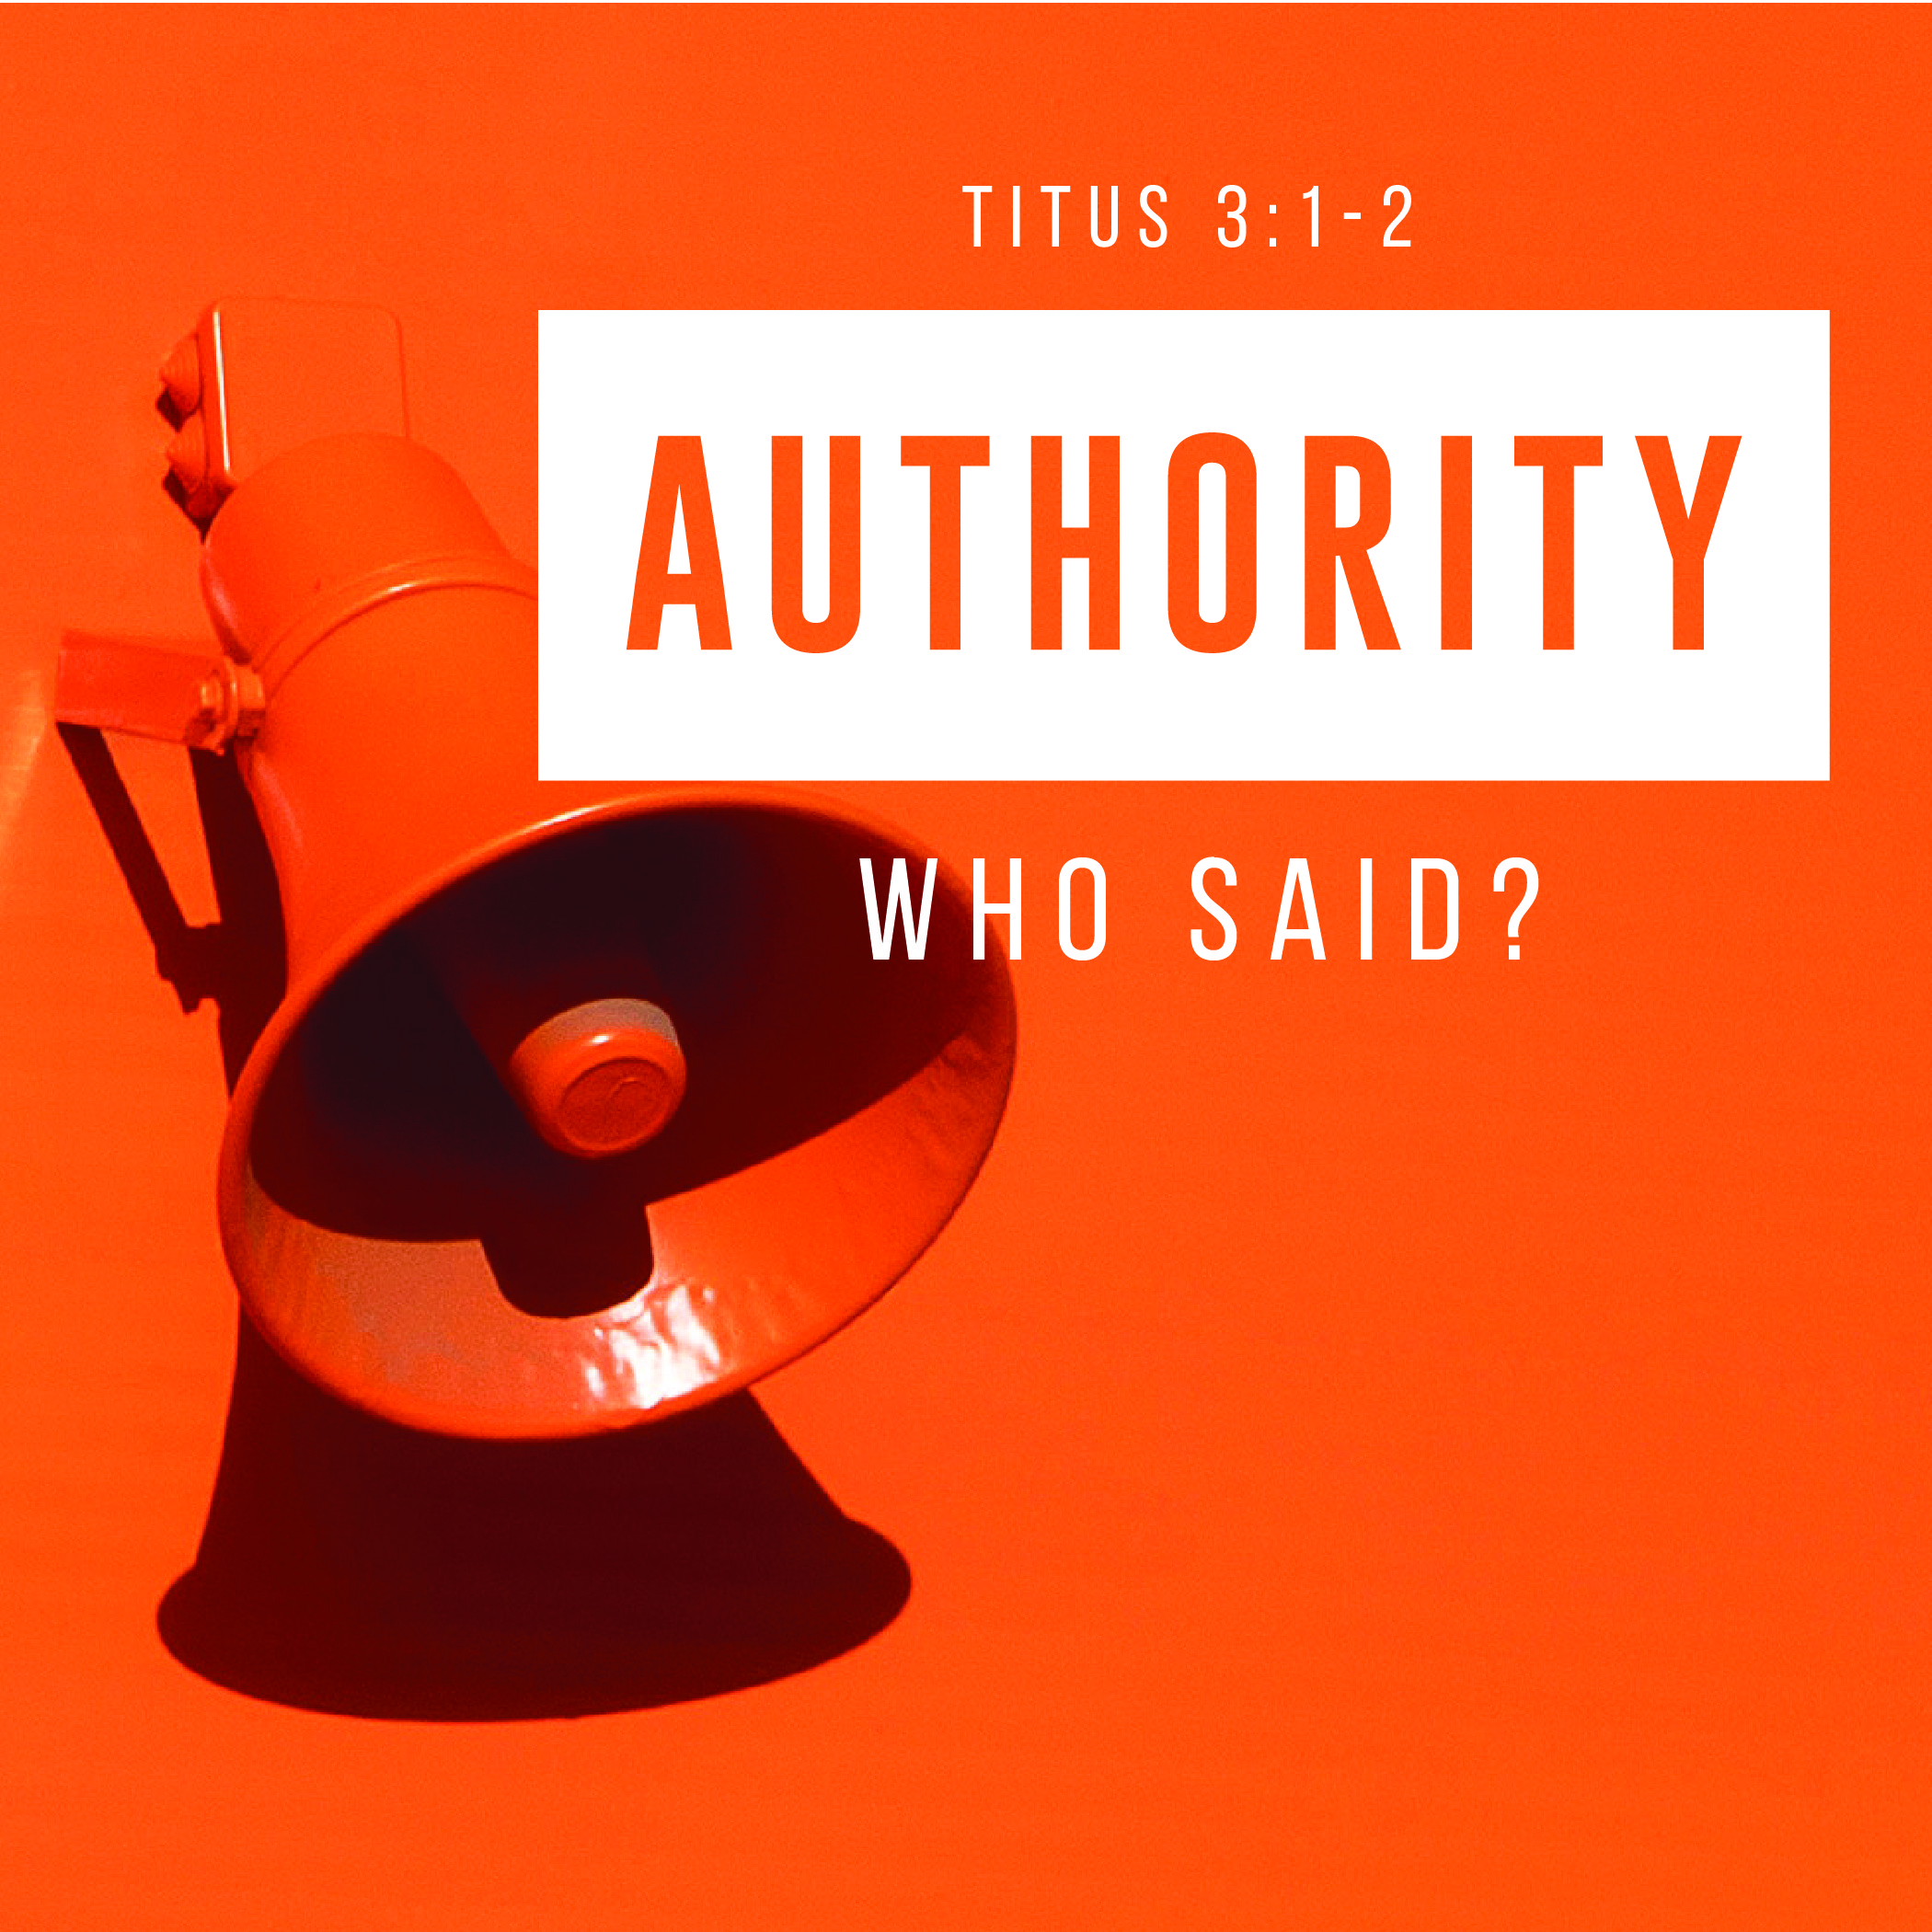 Authority - Who Said?